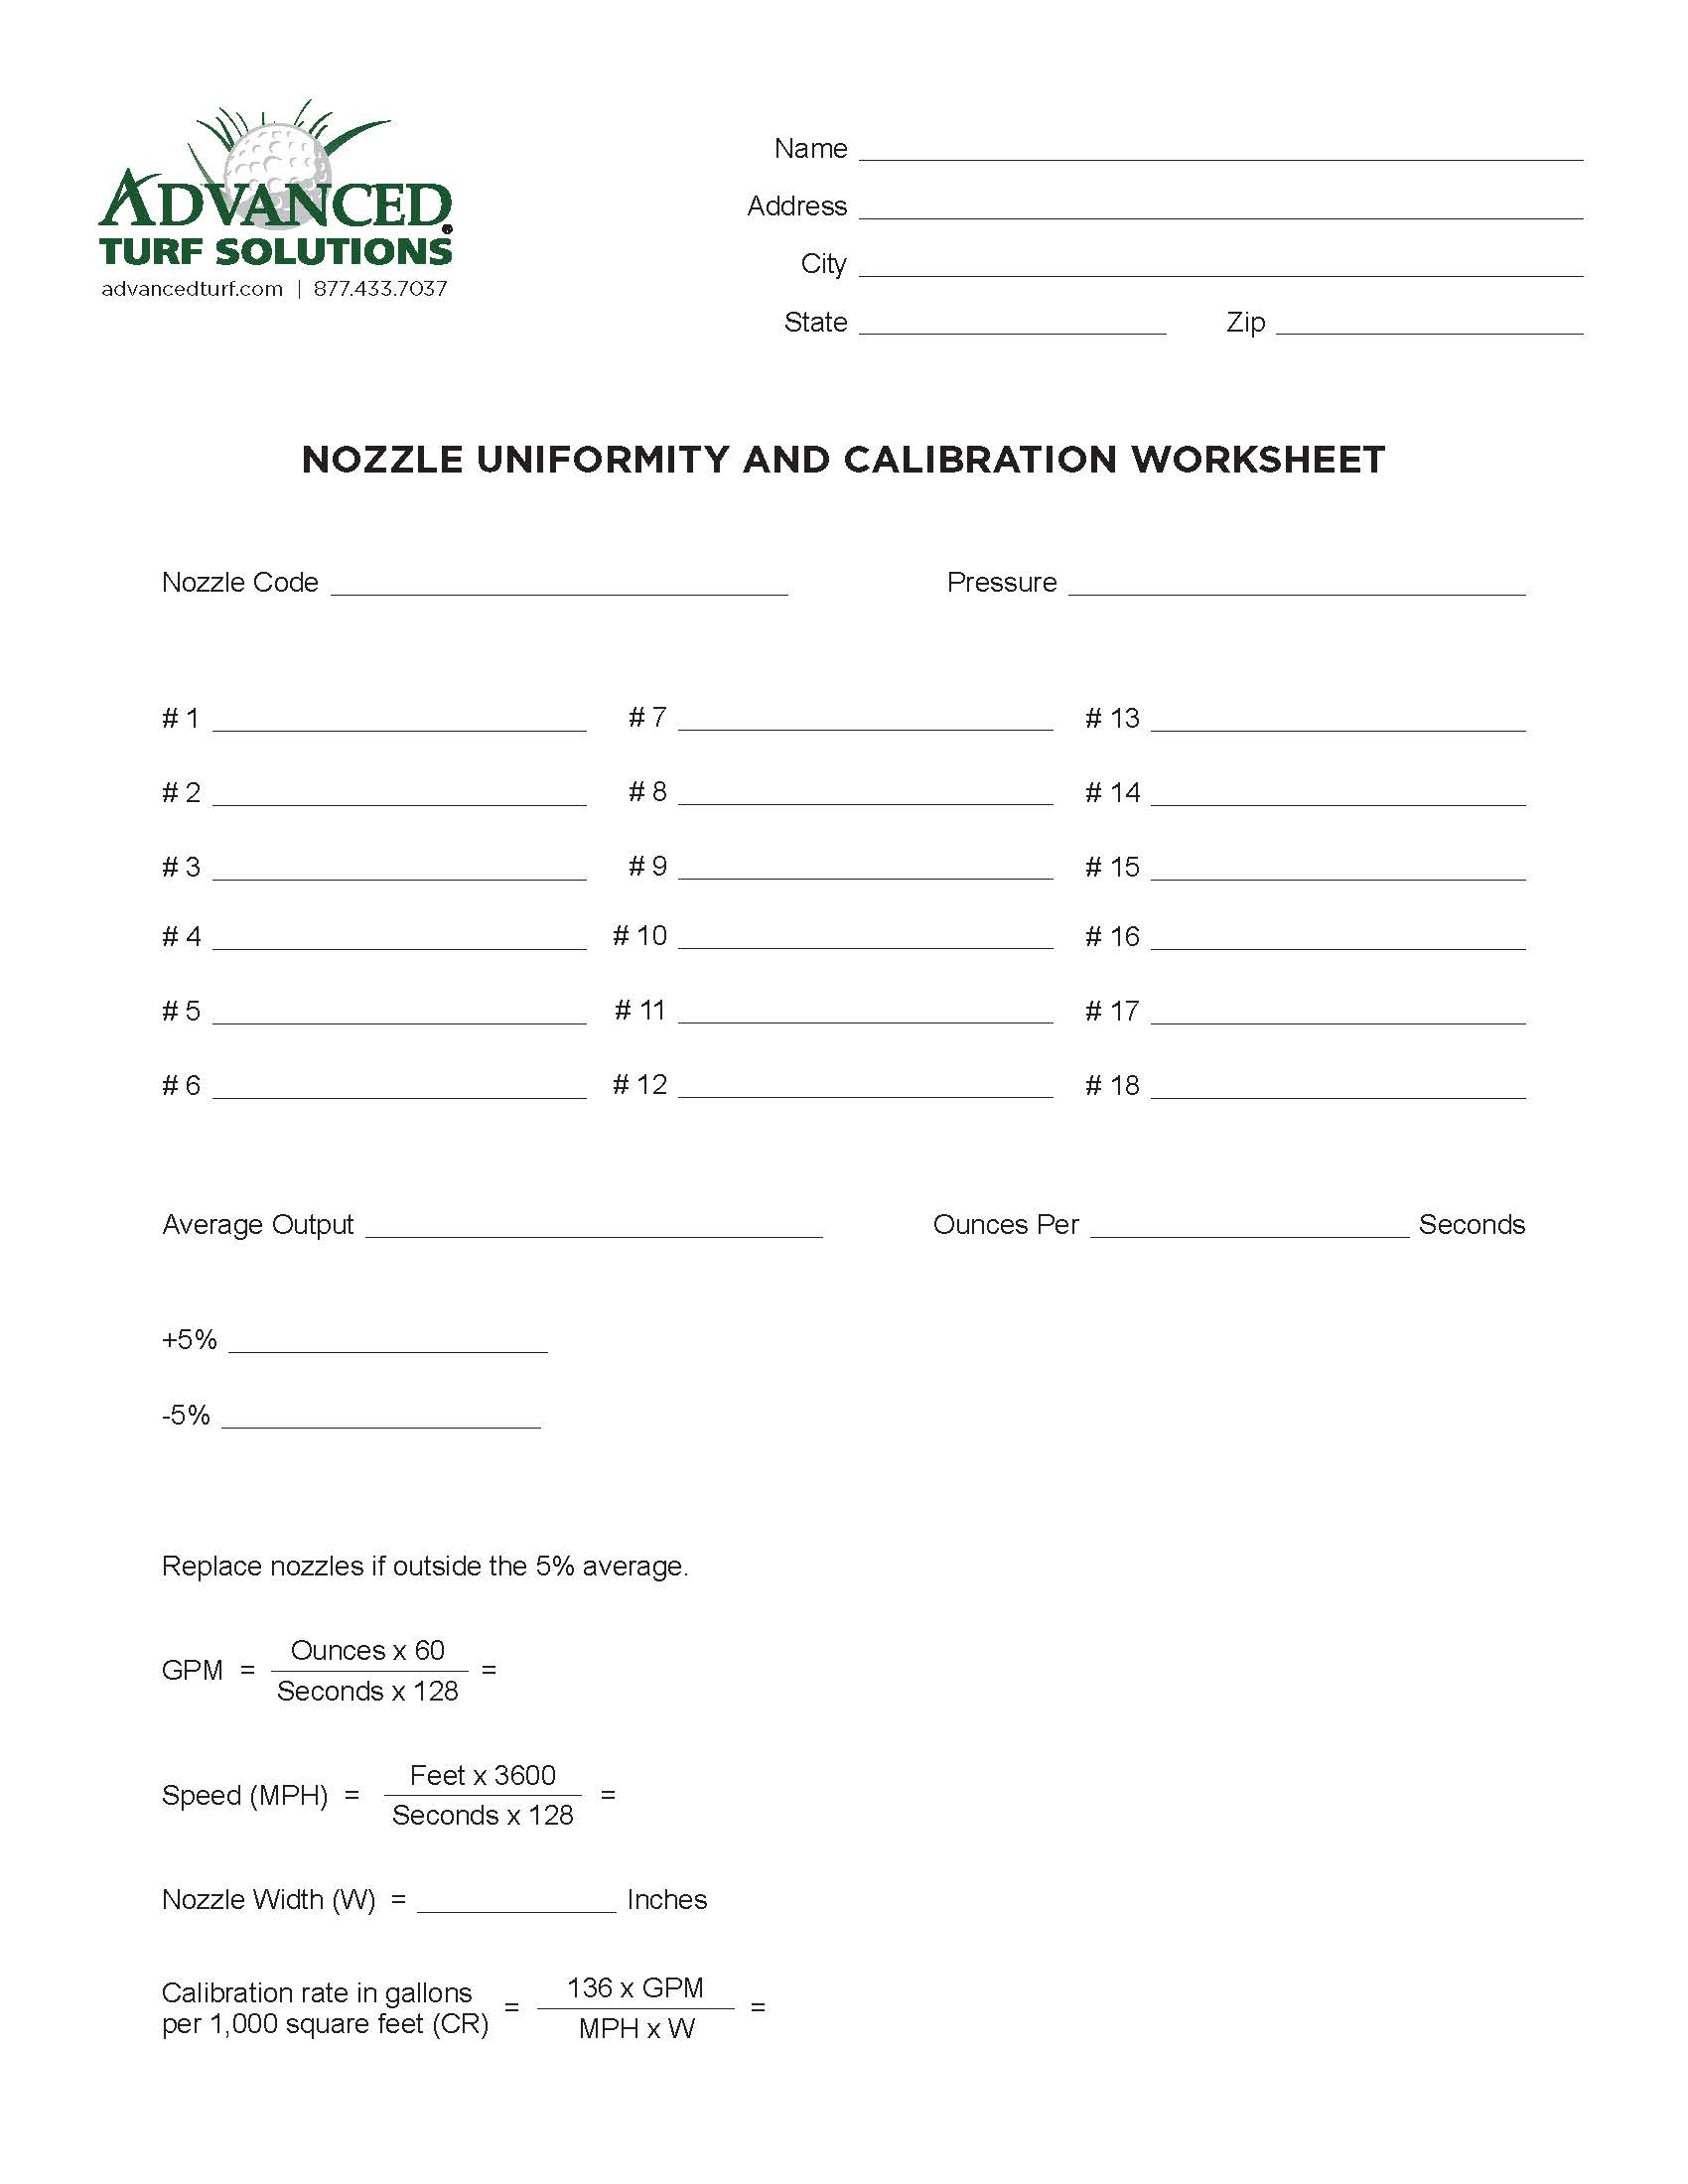 Pesticide Application Record Calibration Worksheet Free